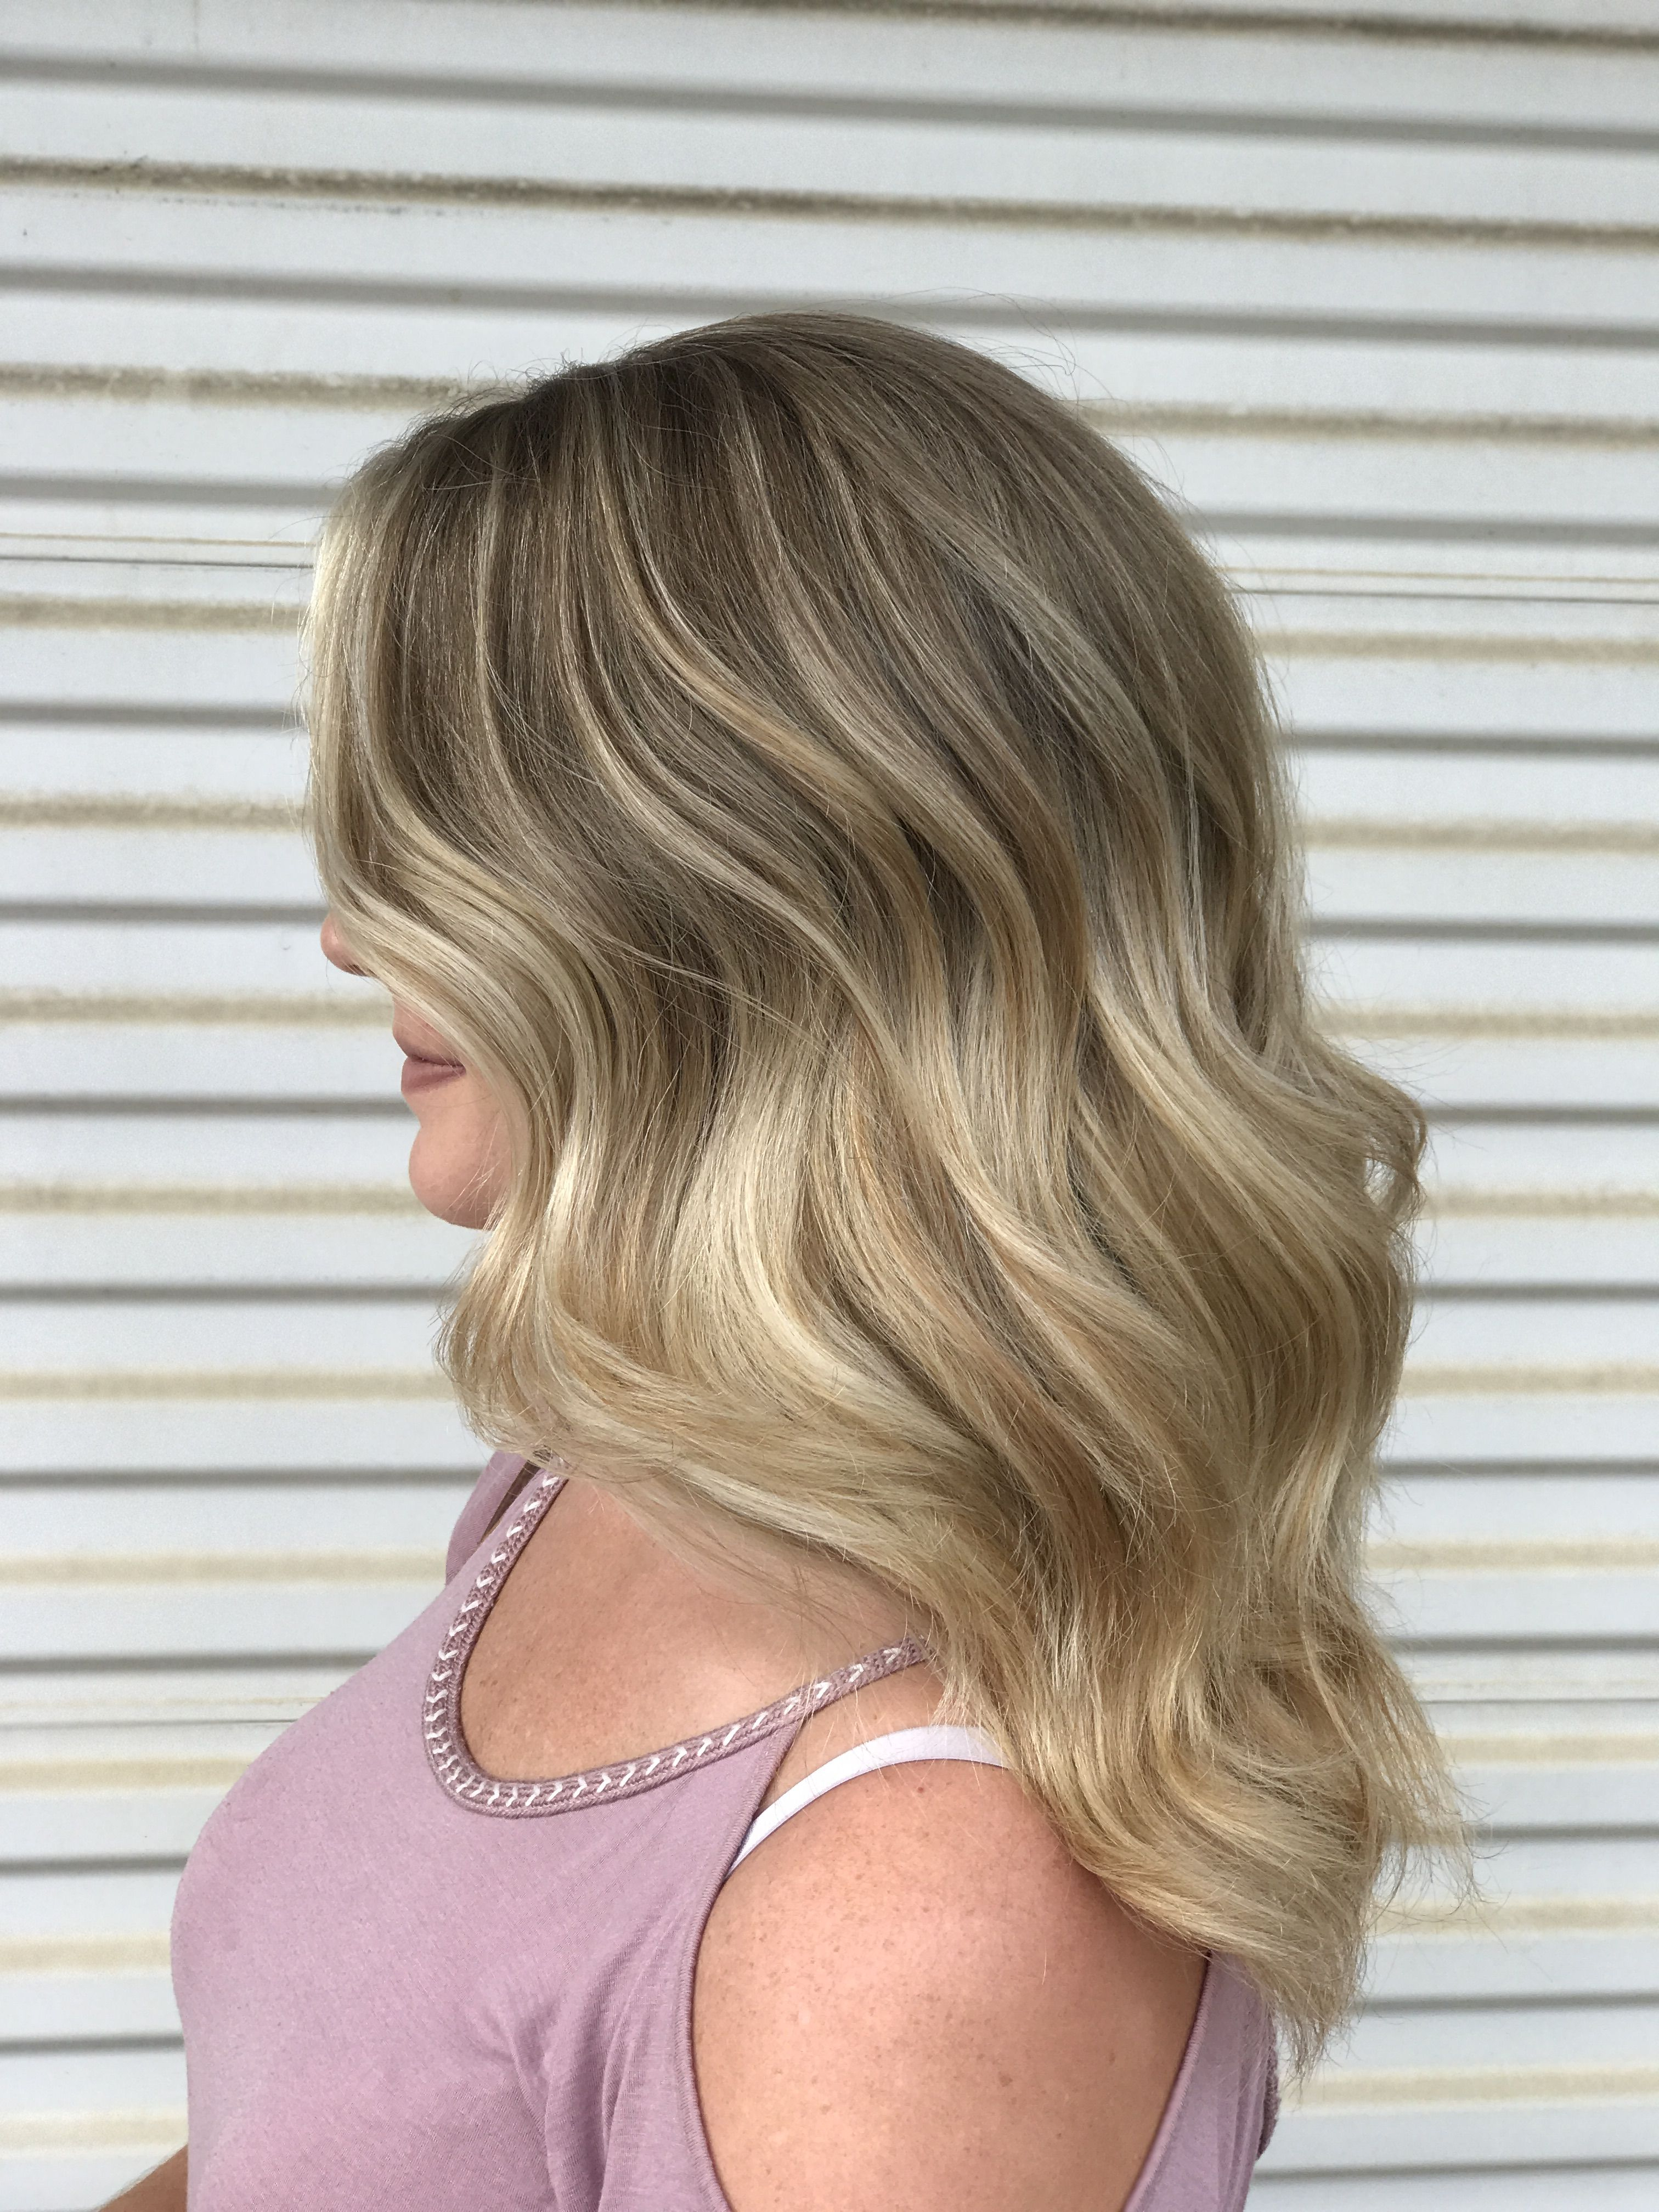 Pin By Lexi Christopher On Hair By Lexi Long Hair Styles Hair Styles Hairdo